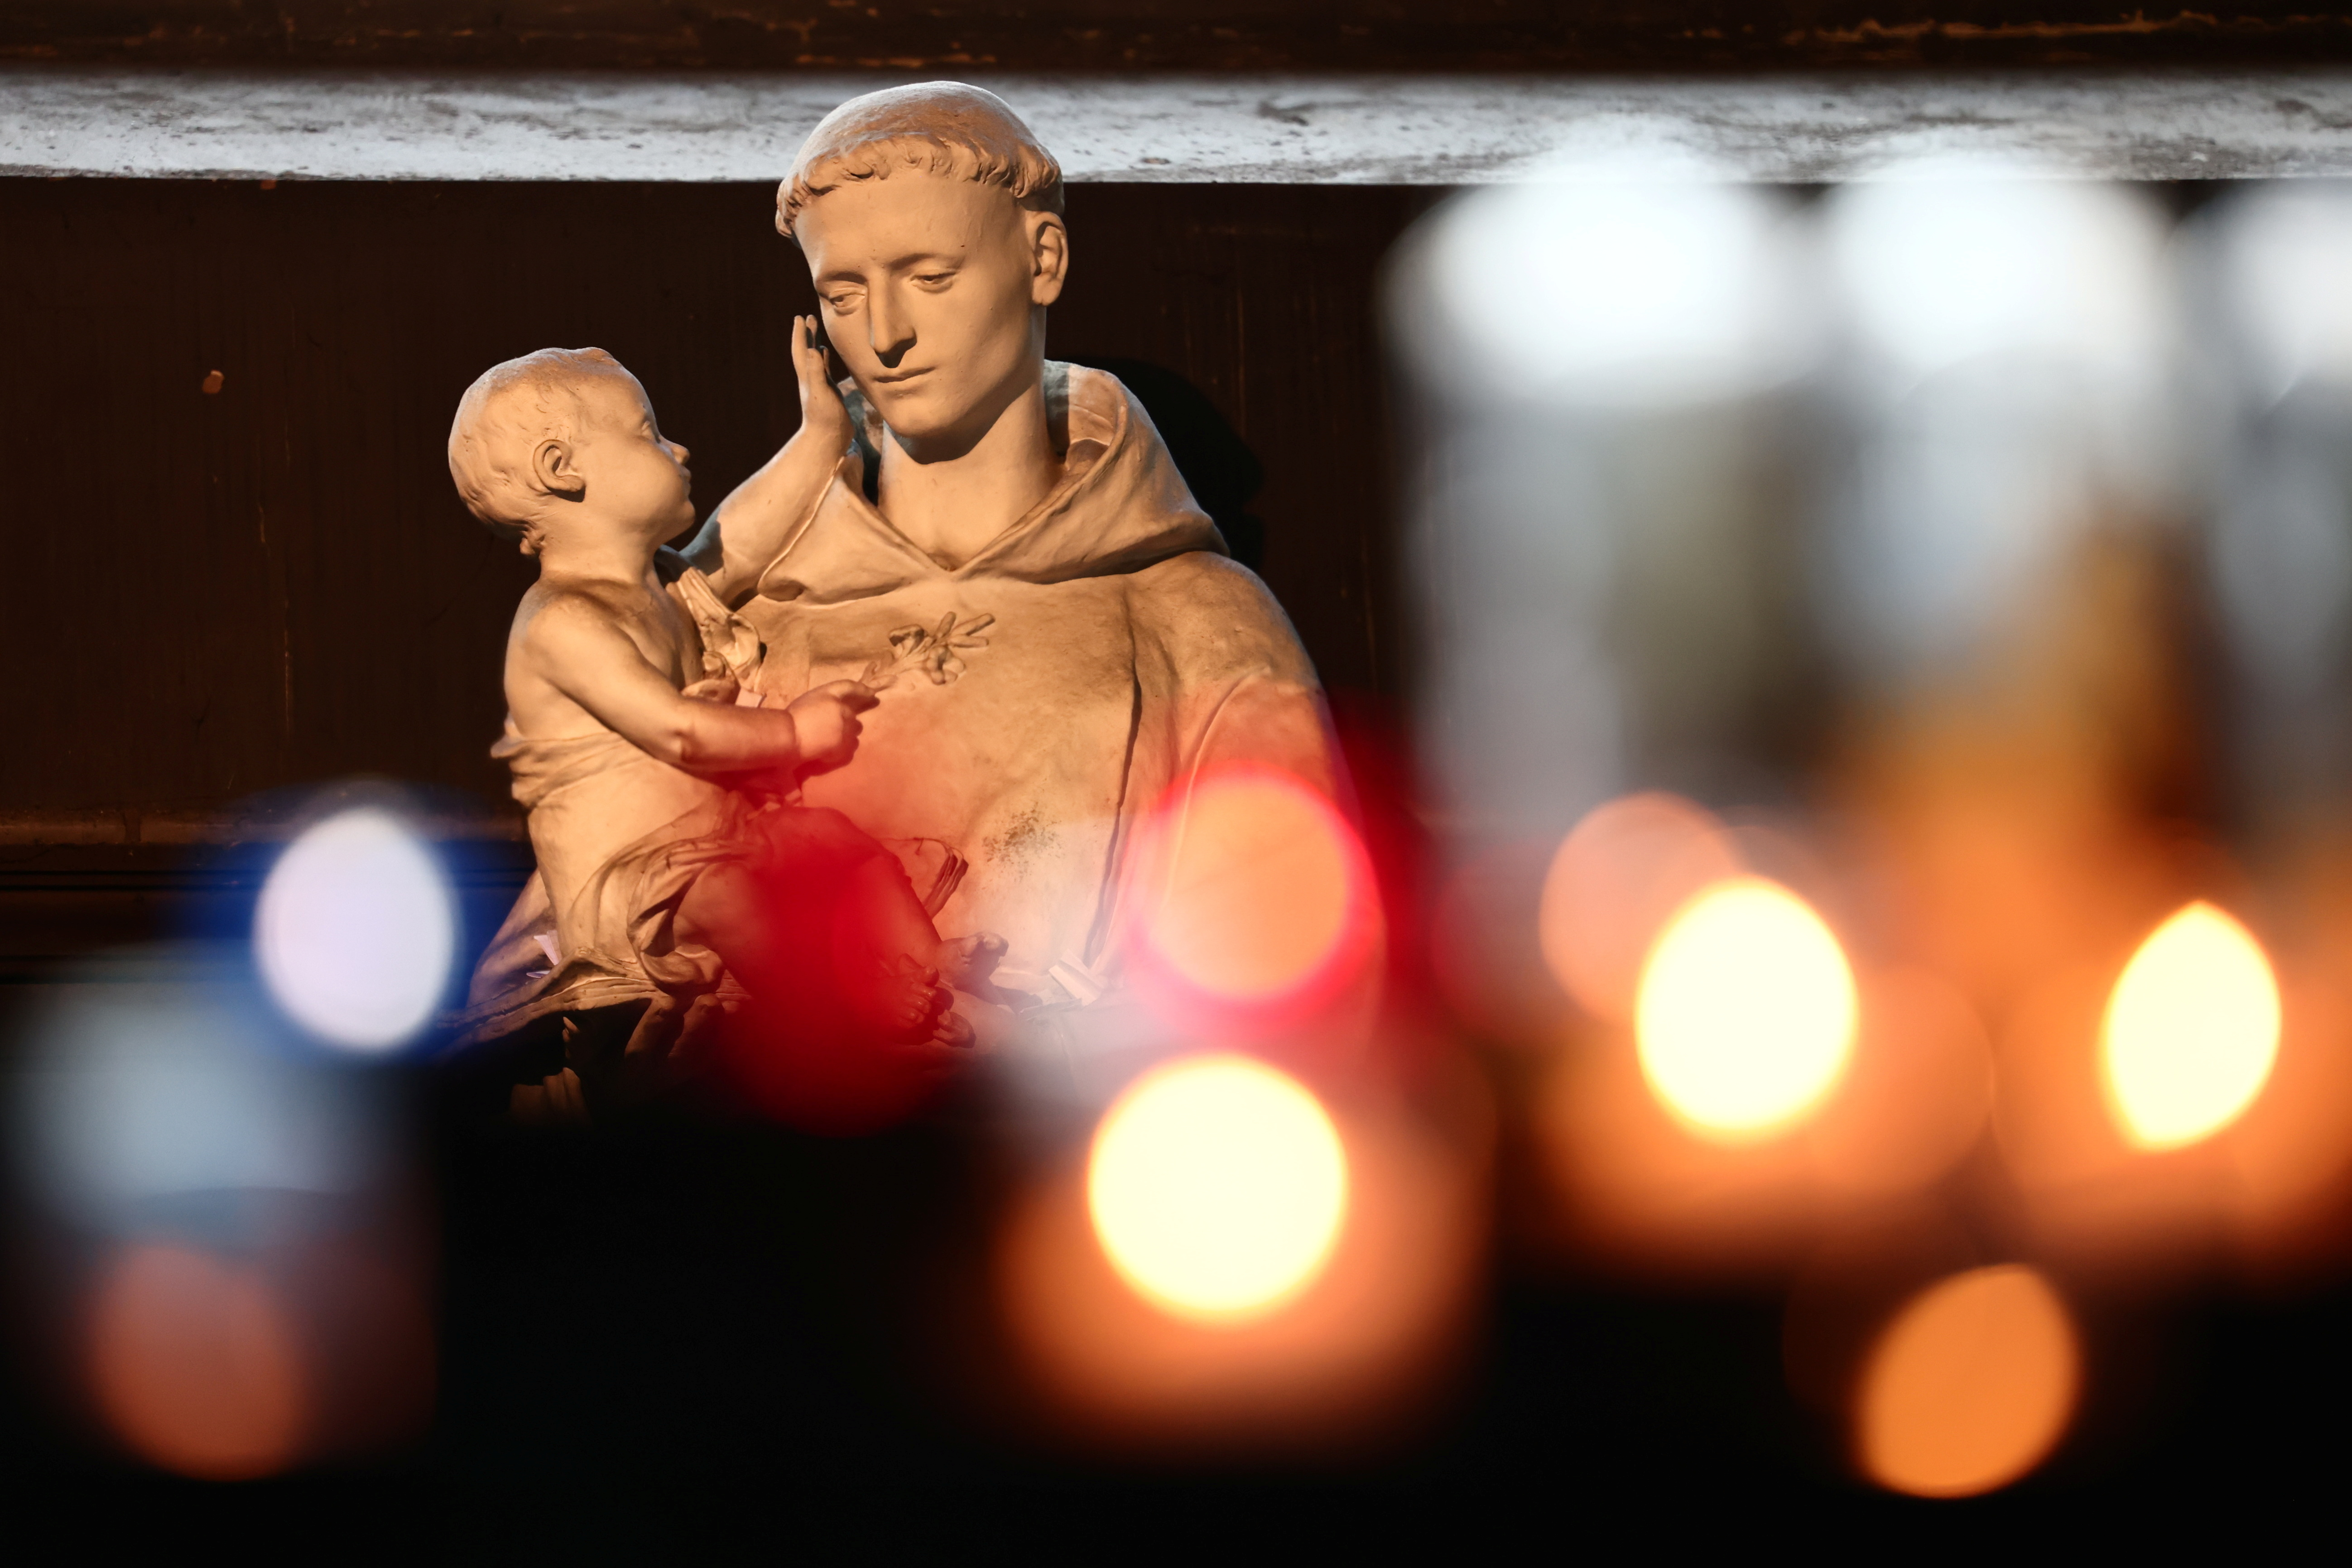 A statue of Saint Anthony of Padua is seen inside the Saint-Sulpice church in Paris, France, October 4, 2021. Picture taken October 4, 2021. REUTERS/Sarah Meyssonnier